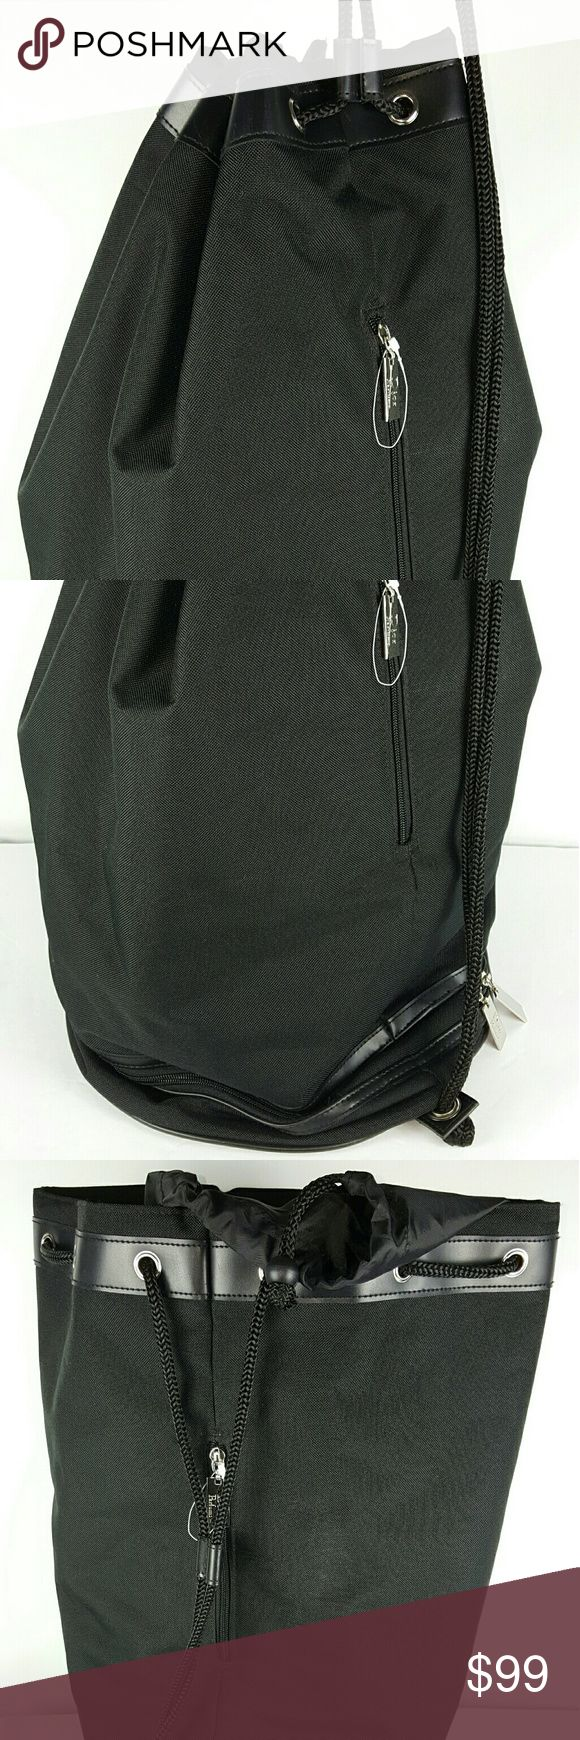 Cristian Dior perfums Large Nylon Travel Bag, New This Large Cristian Dior perfums Travel bag is New Without tags.  It has two compartments as seen in the pictures and a strung flap for maximum loads. Cristian Dior perfums  Bags Travel Bags